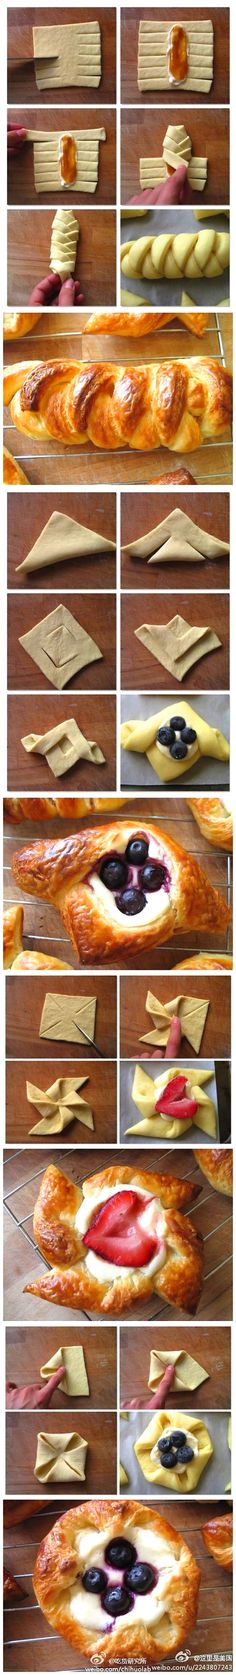 Pastry folding ideas and 21 other food ideas